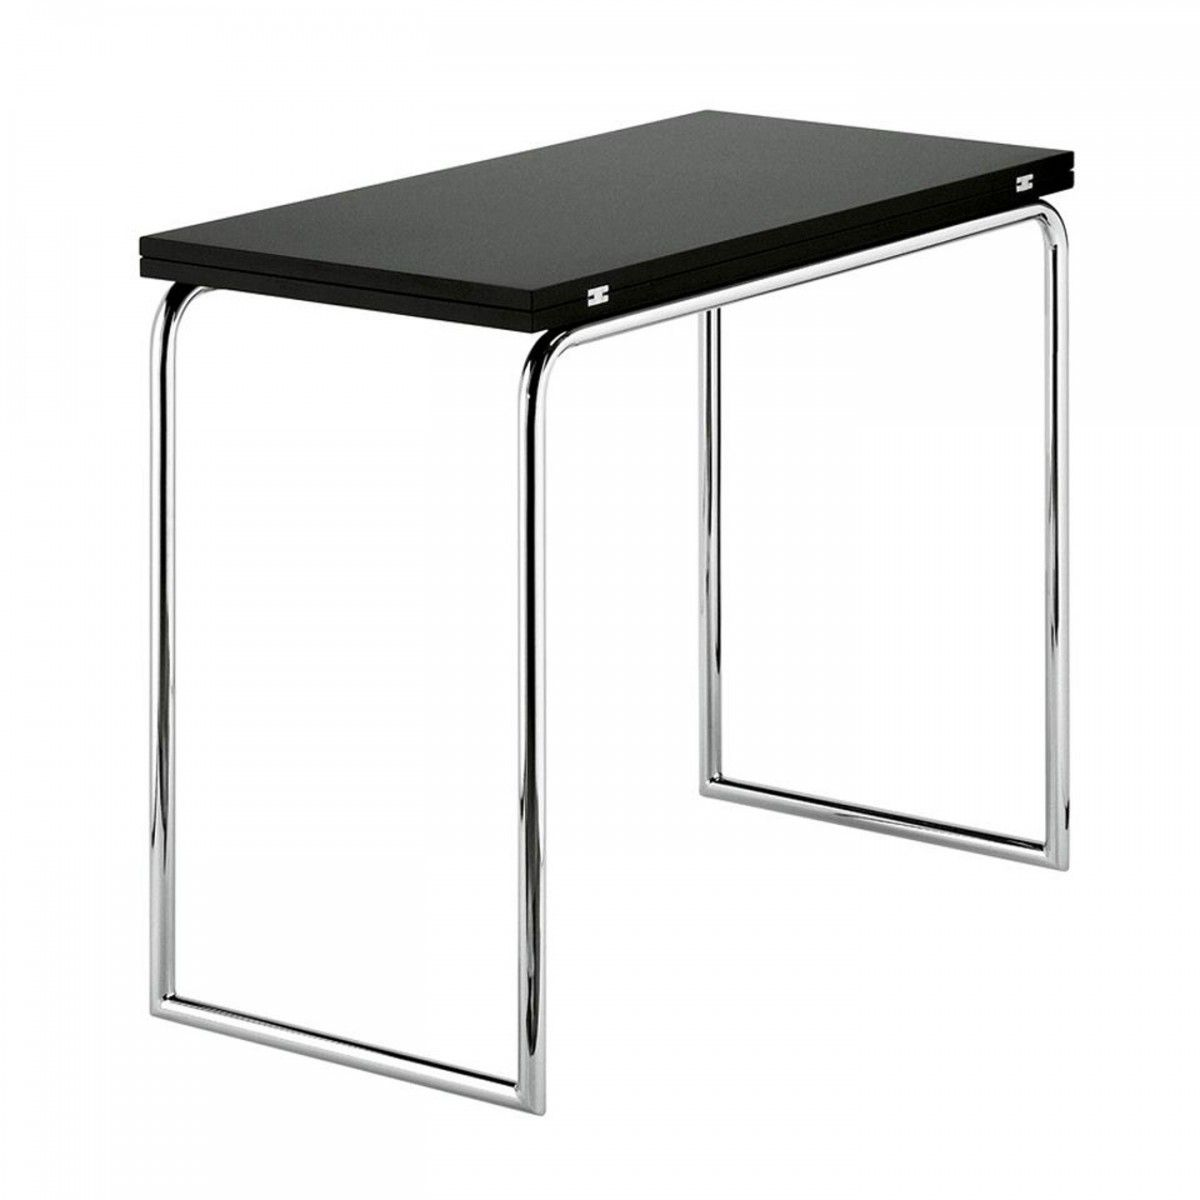 B109 Folding Table Console Table Table Steel Furniture